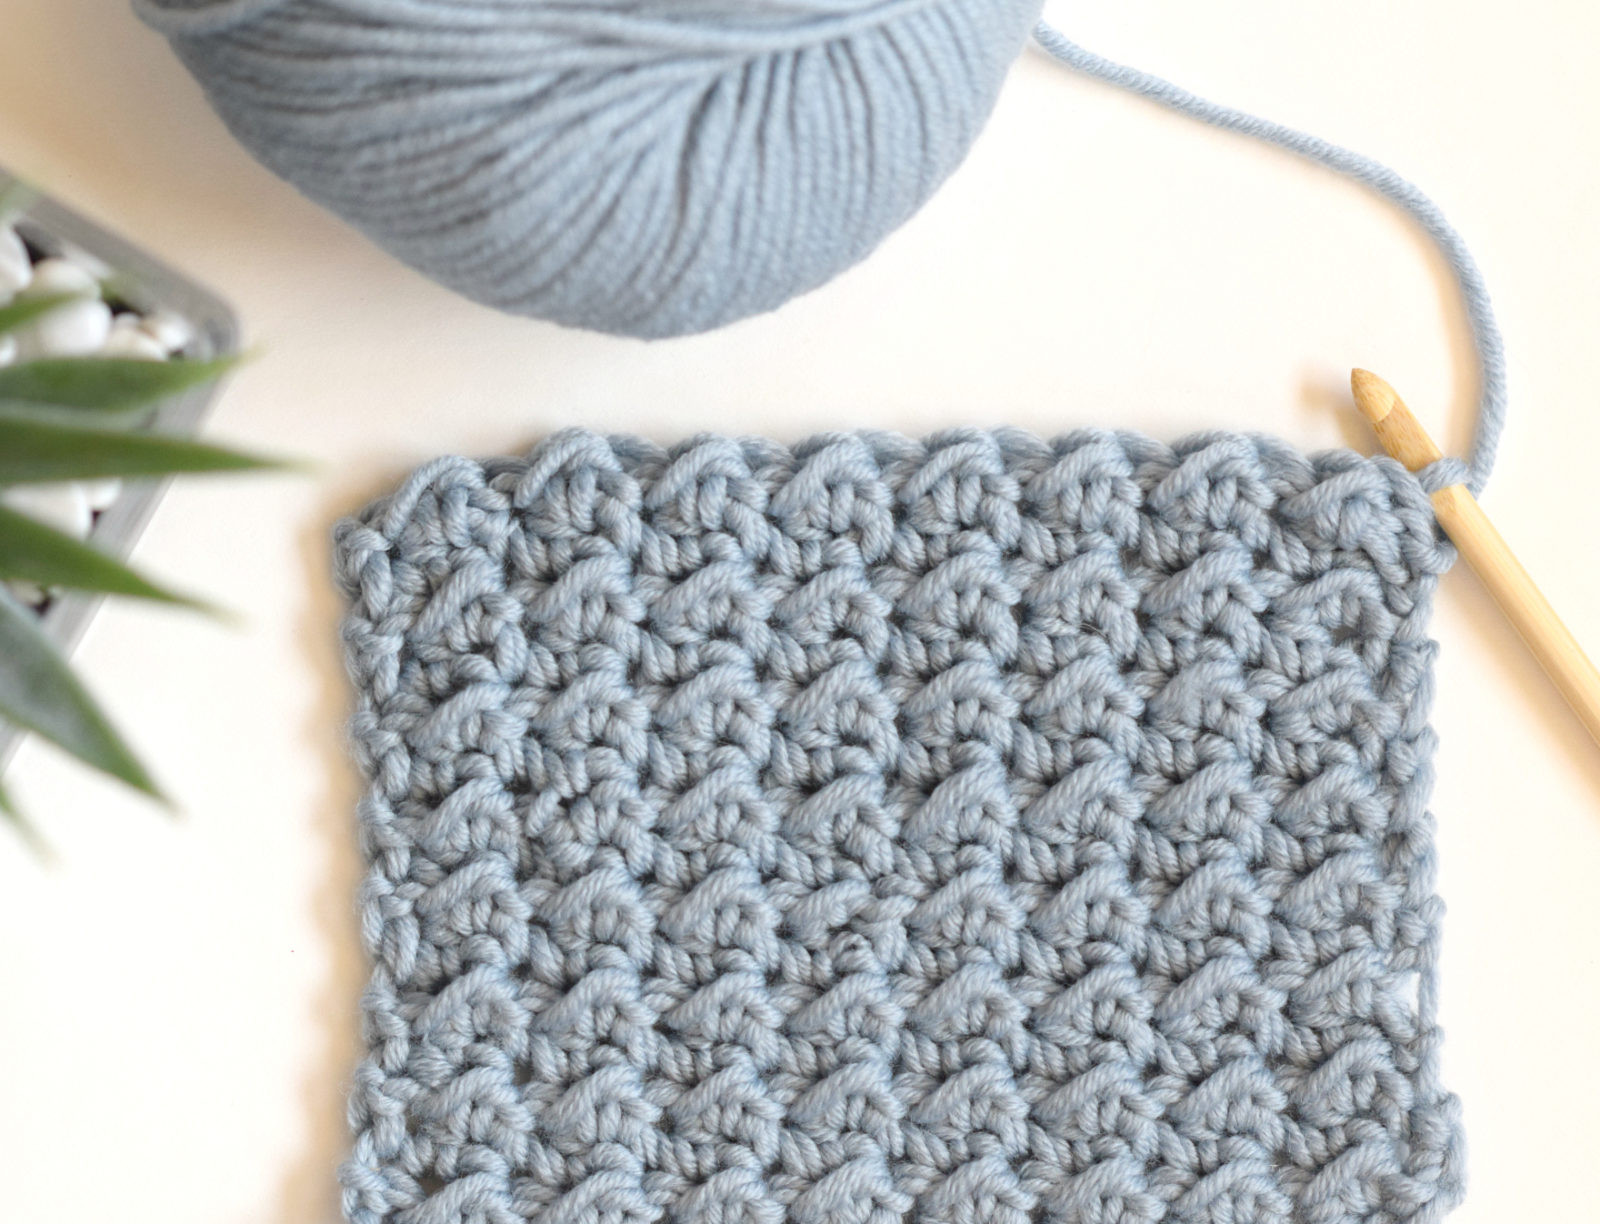 Crochet Stitch Patterns Awesome How to Crochet the even Moss Stitch – Mama In A Stitch Of Marvelous 44 Photos Crochet Stitch Patterns